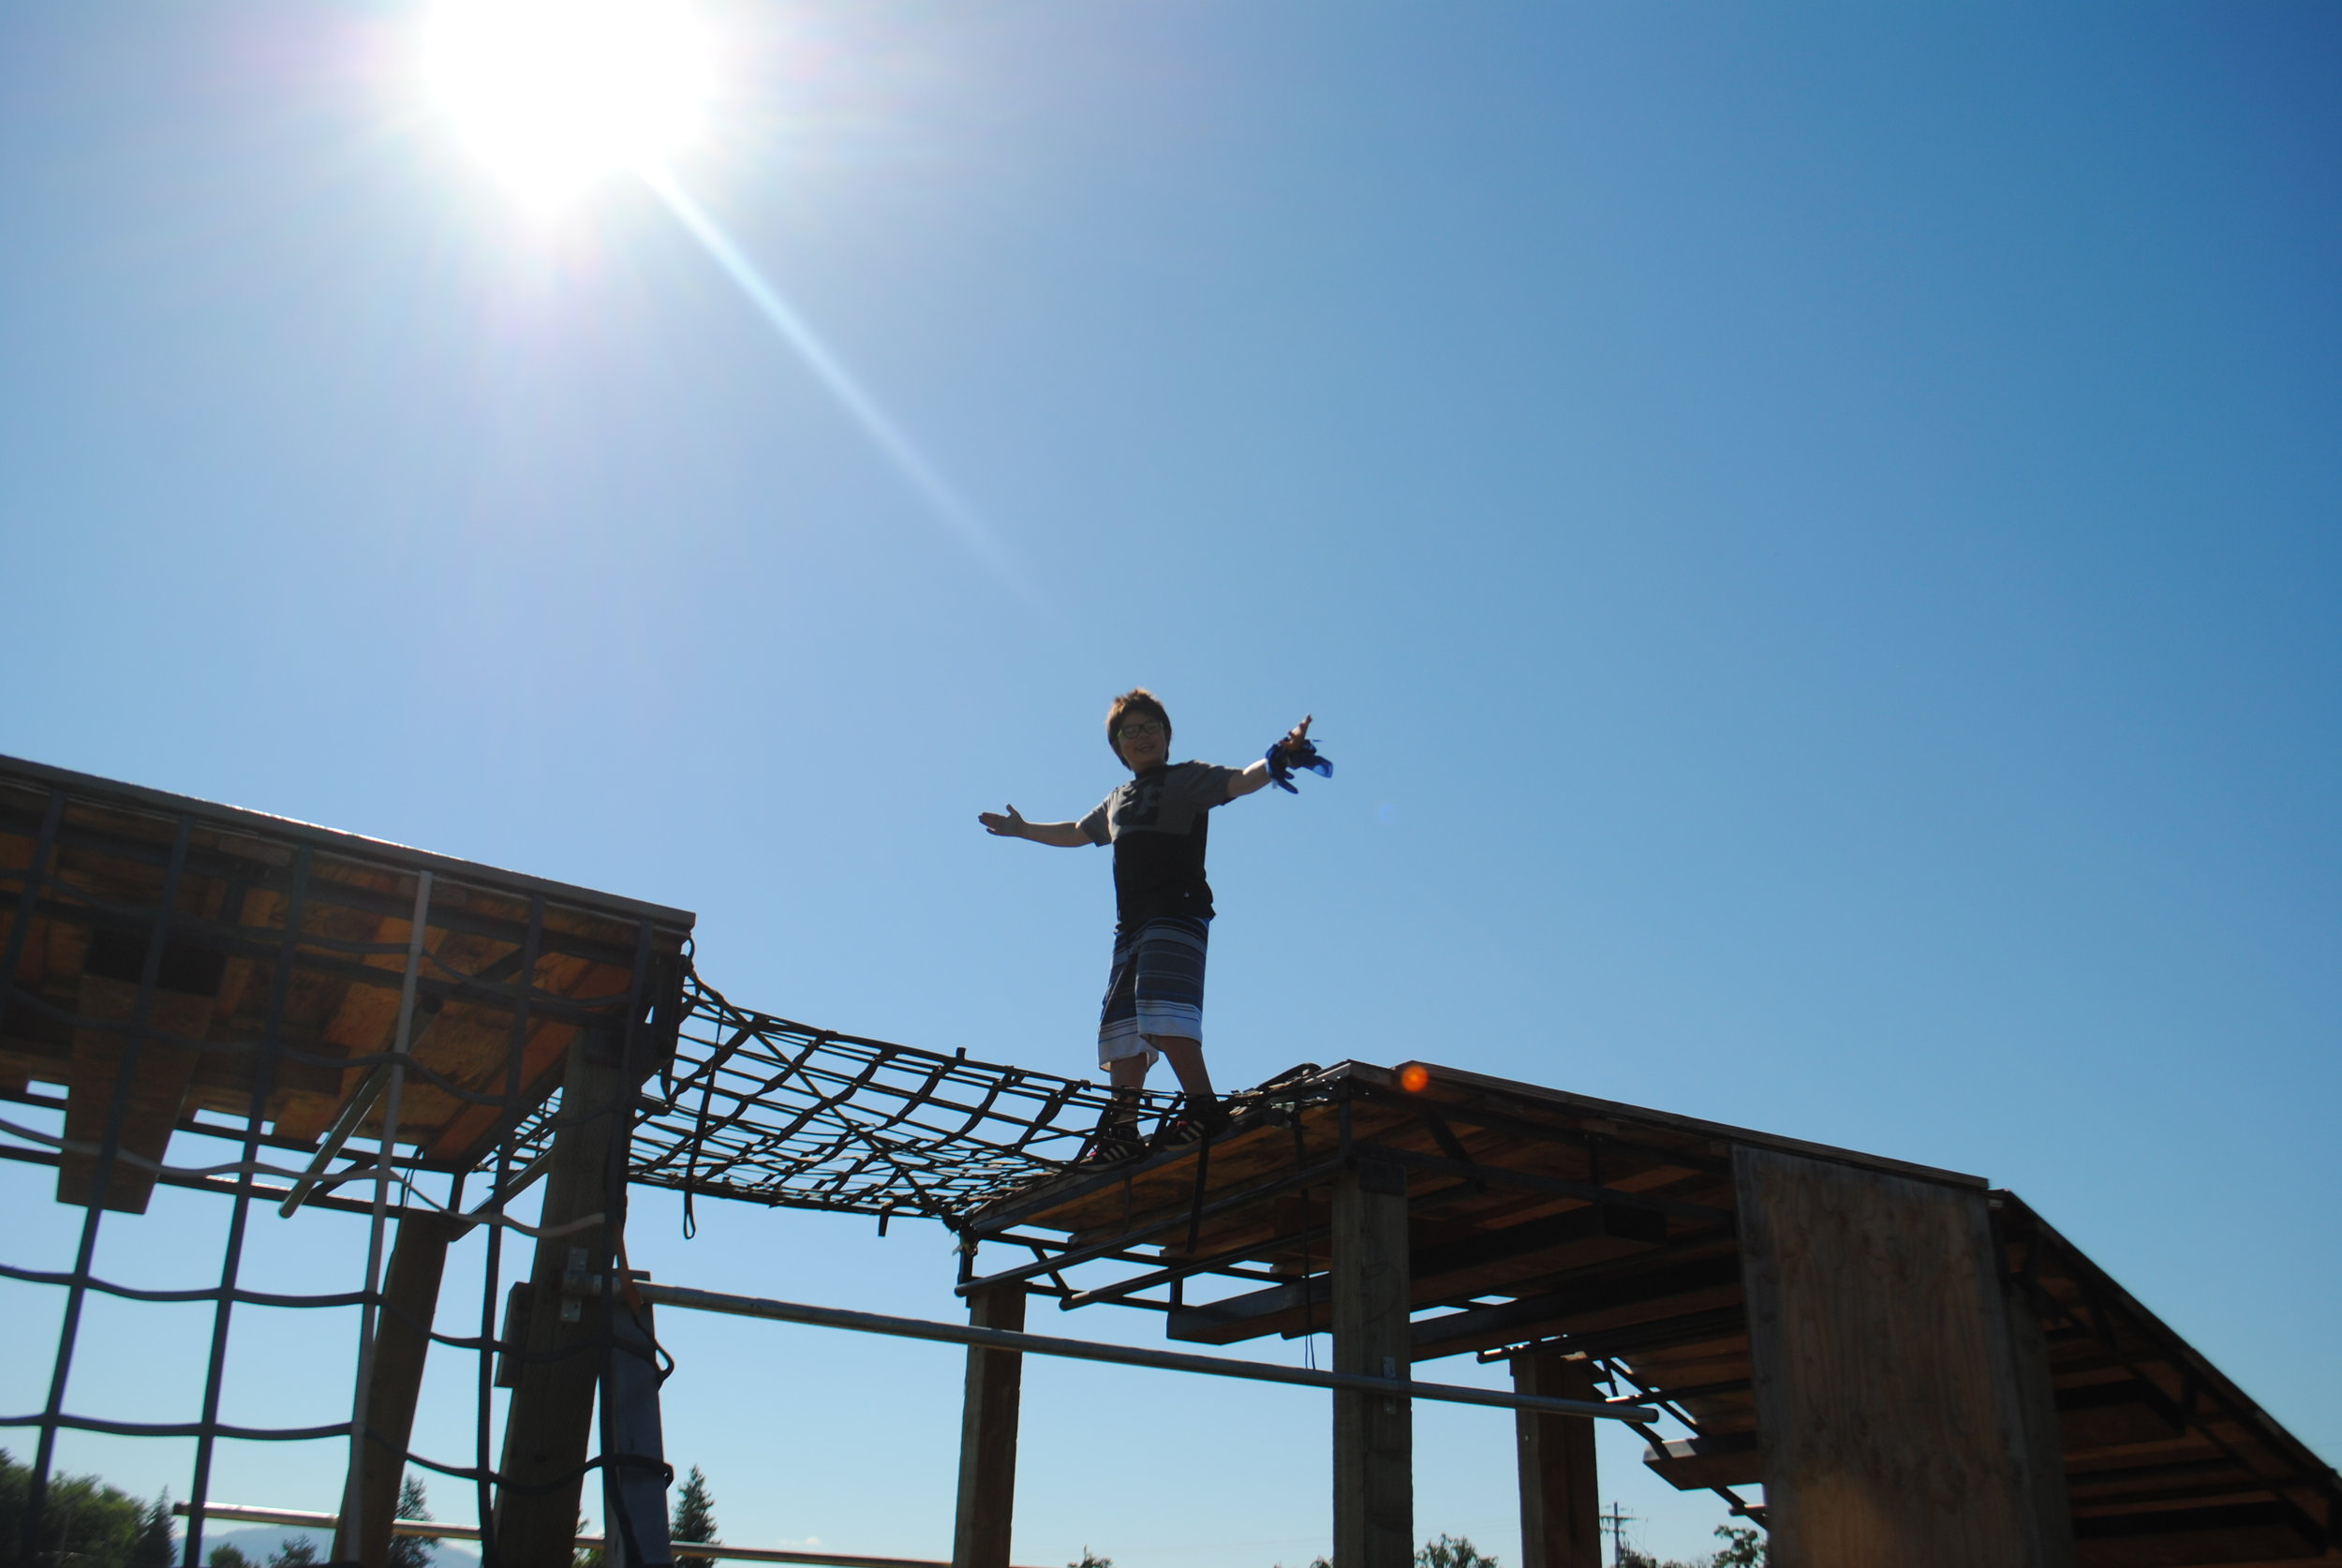 parkour summer camps at higs gym u2014 what to do in southern oregon